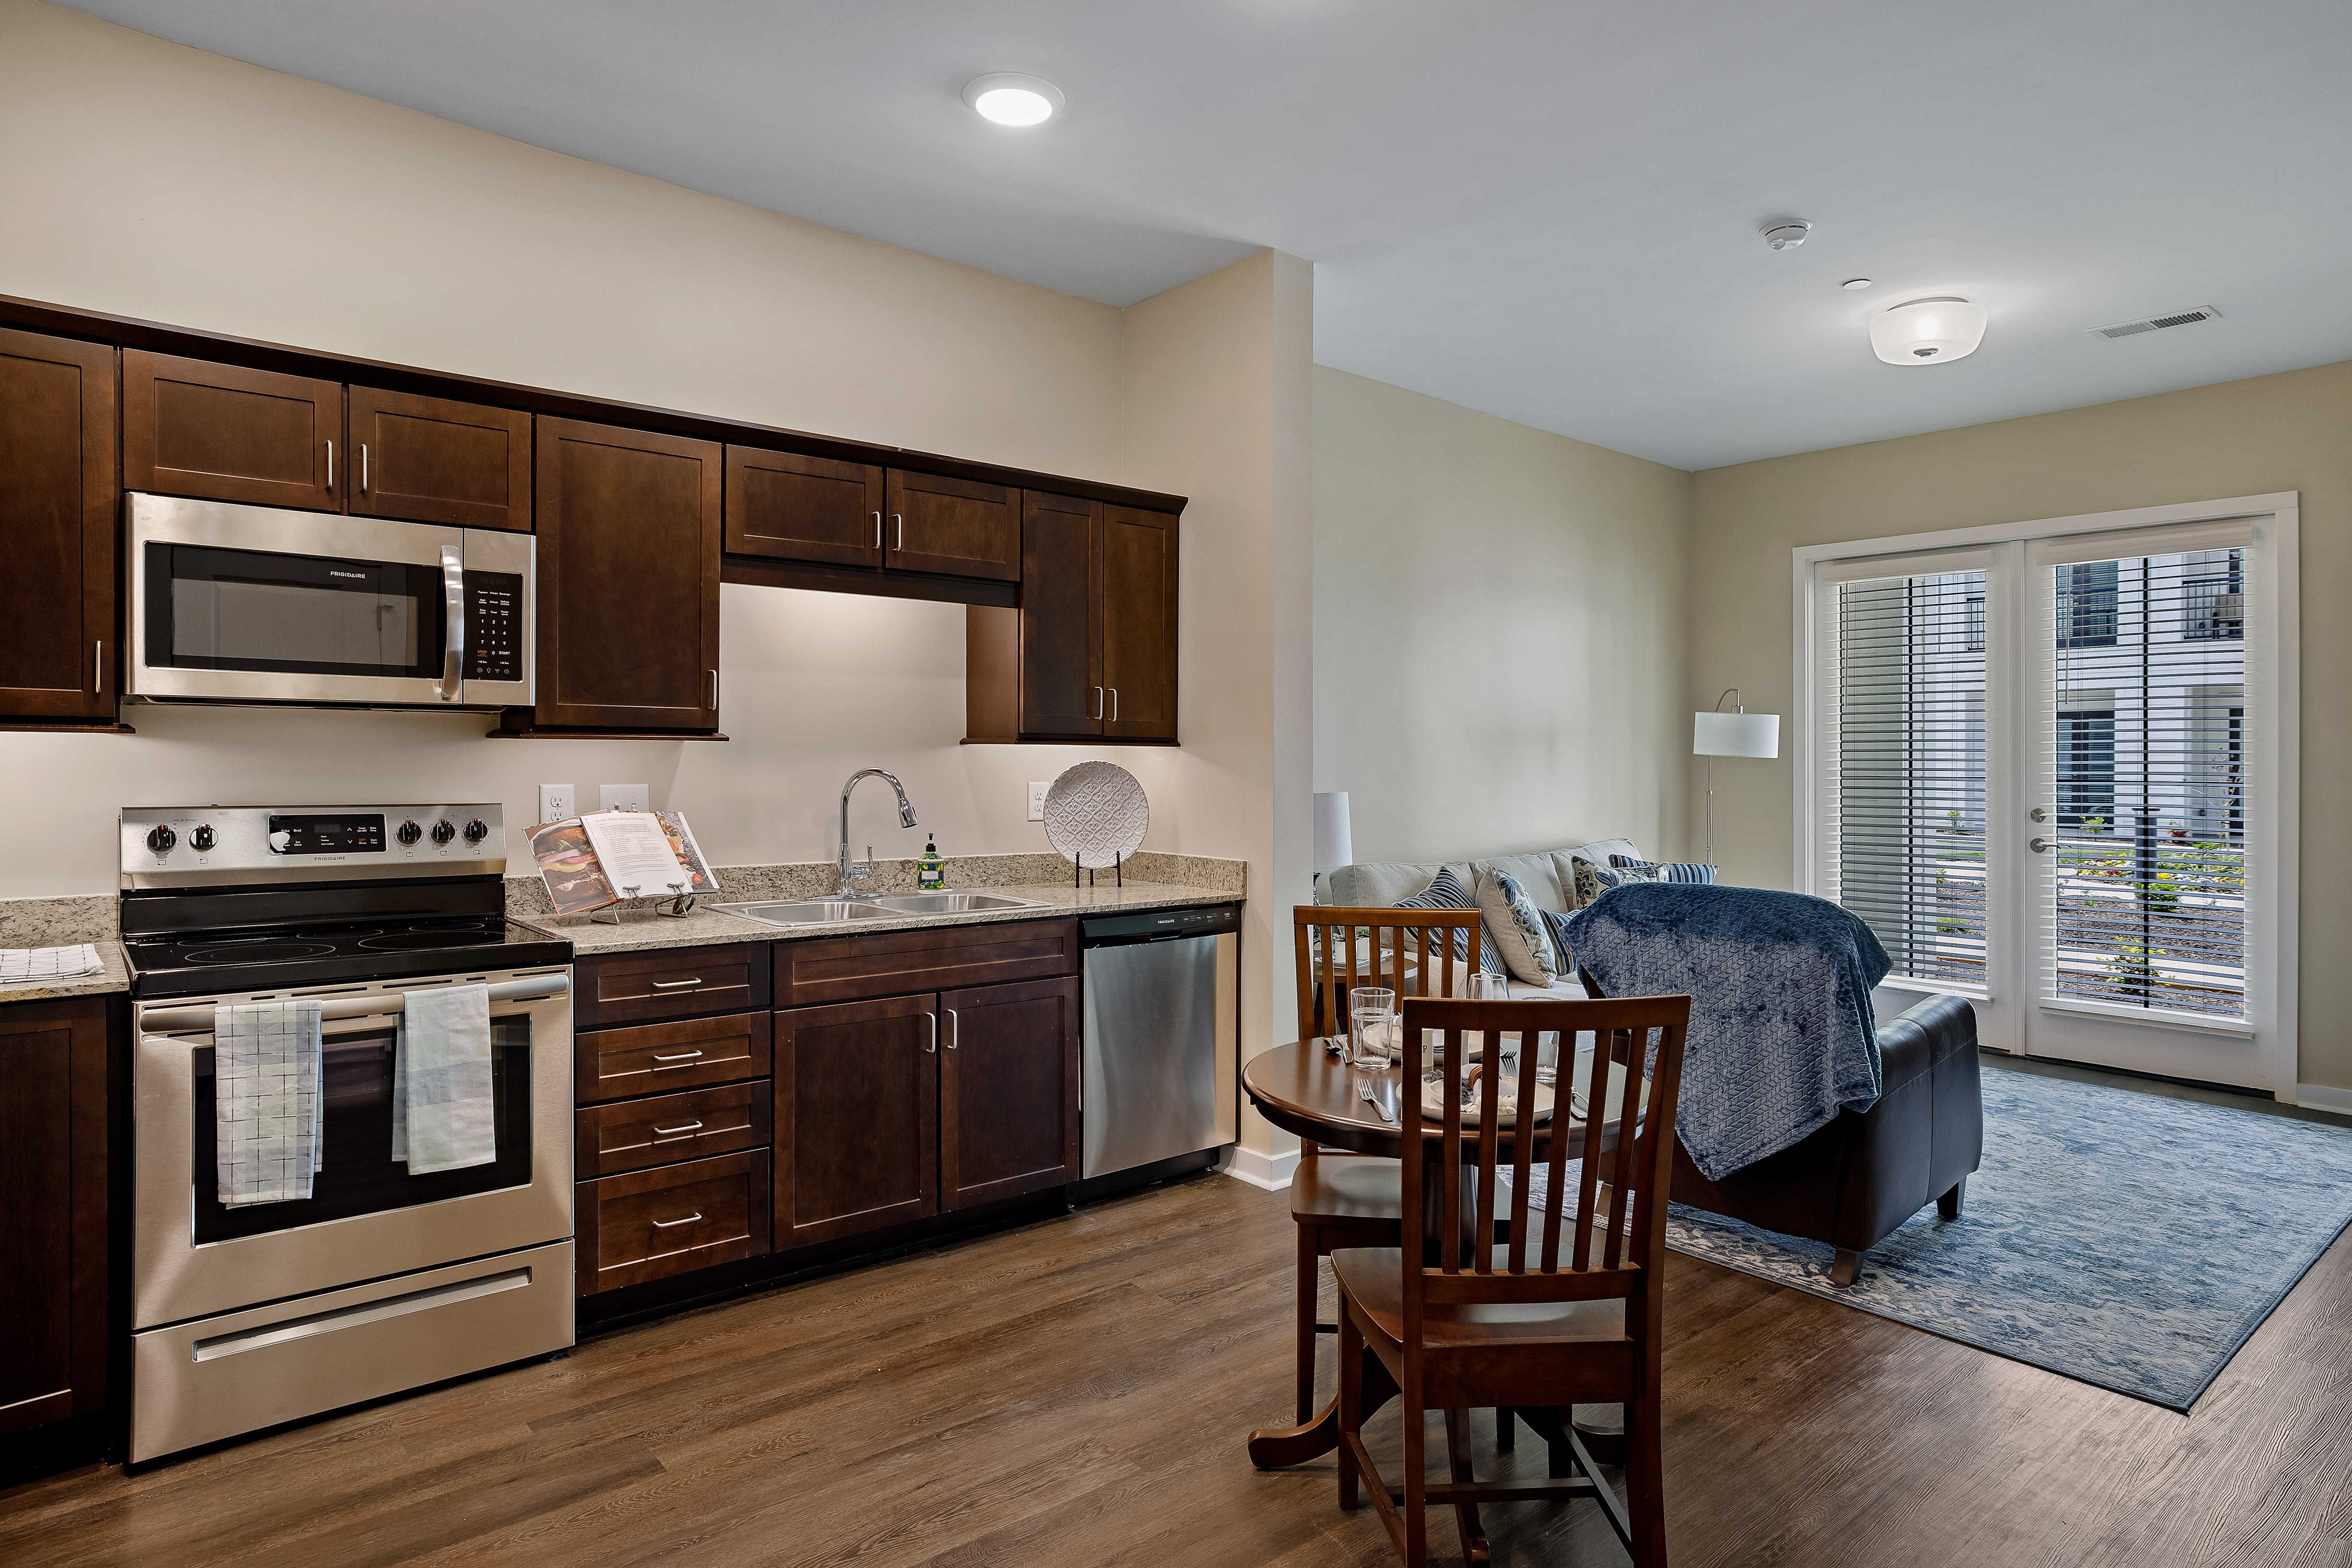 Dark wood cabinets and steel appliance home at The Claiborne at Newnan Lakes in Newnan, GA